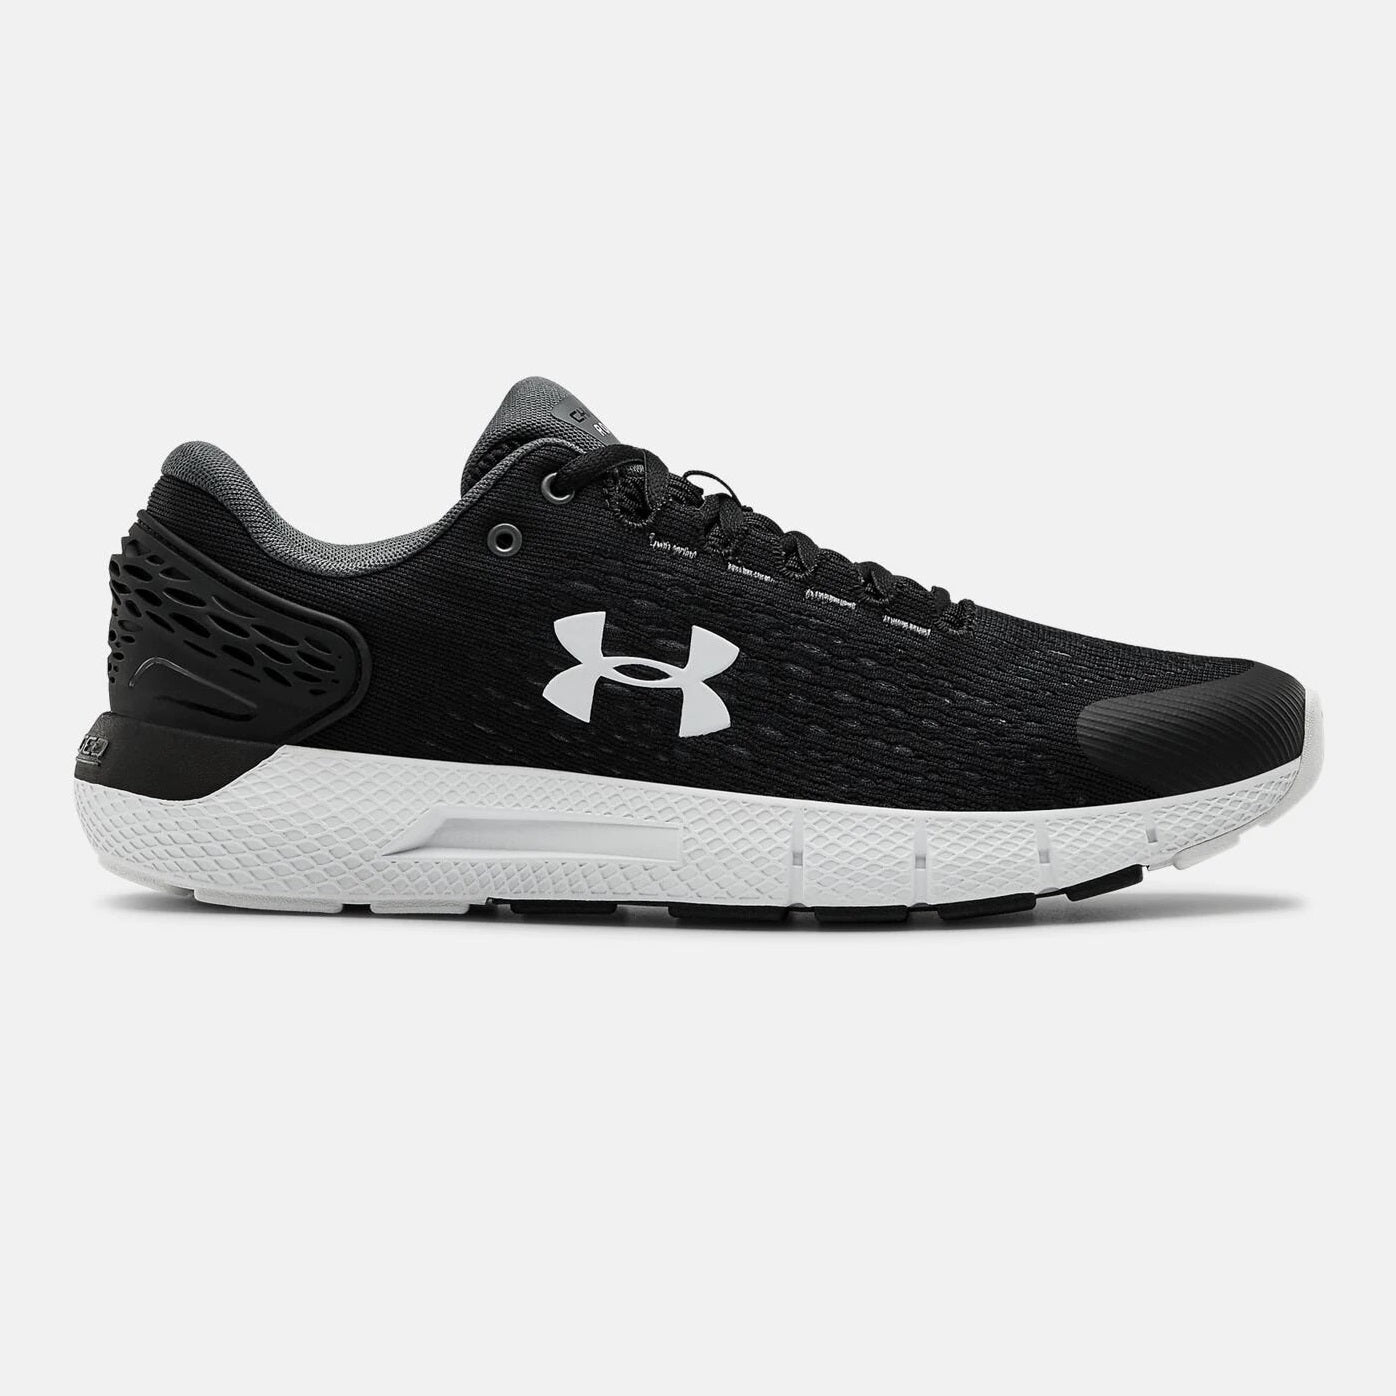 Under Armour Men's UA Charged Rogue 2 Running Shoes - Black/White